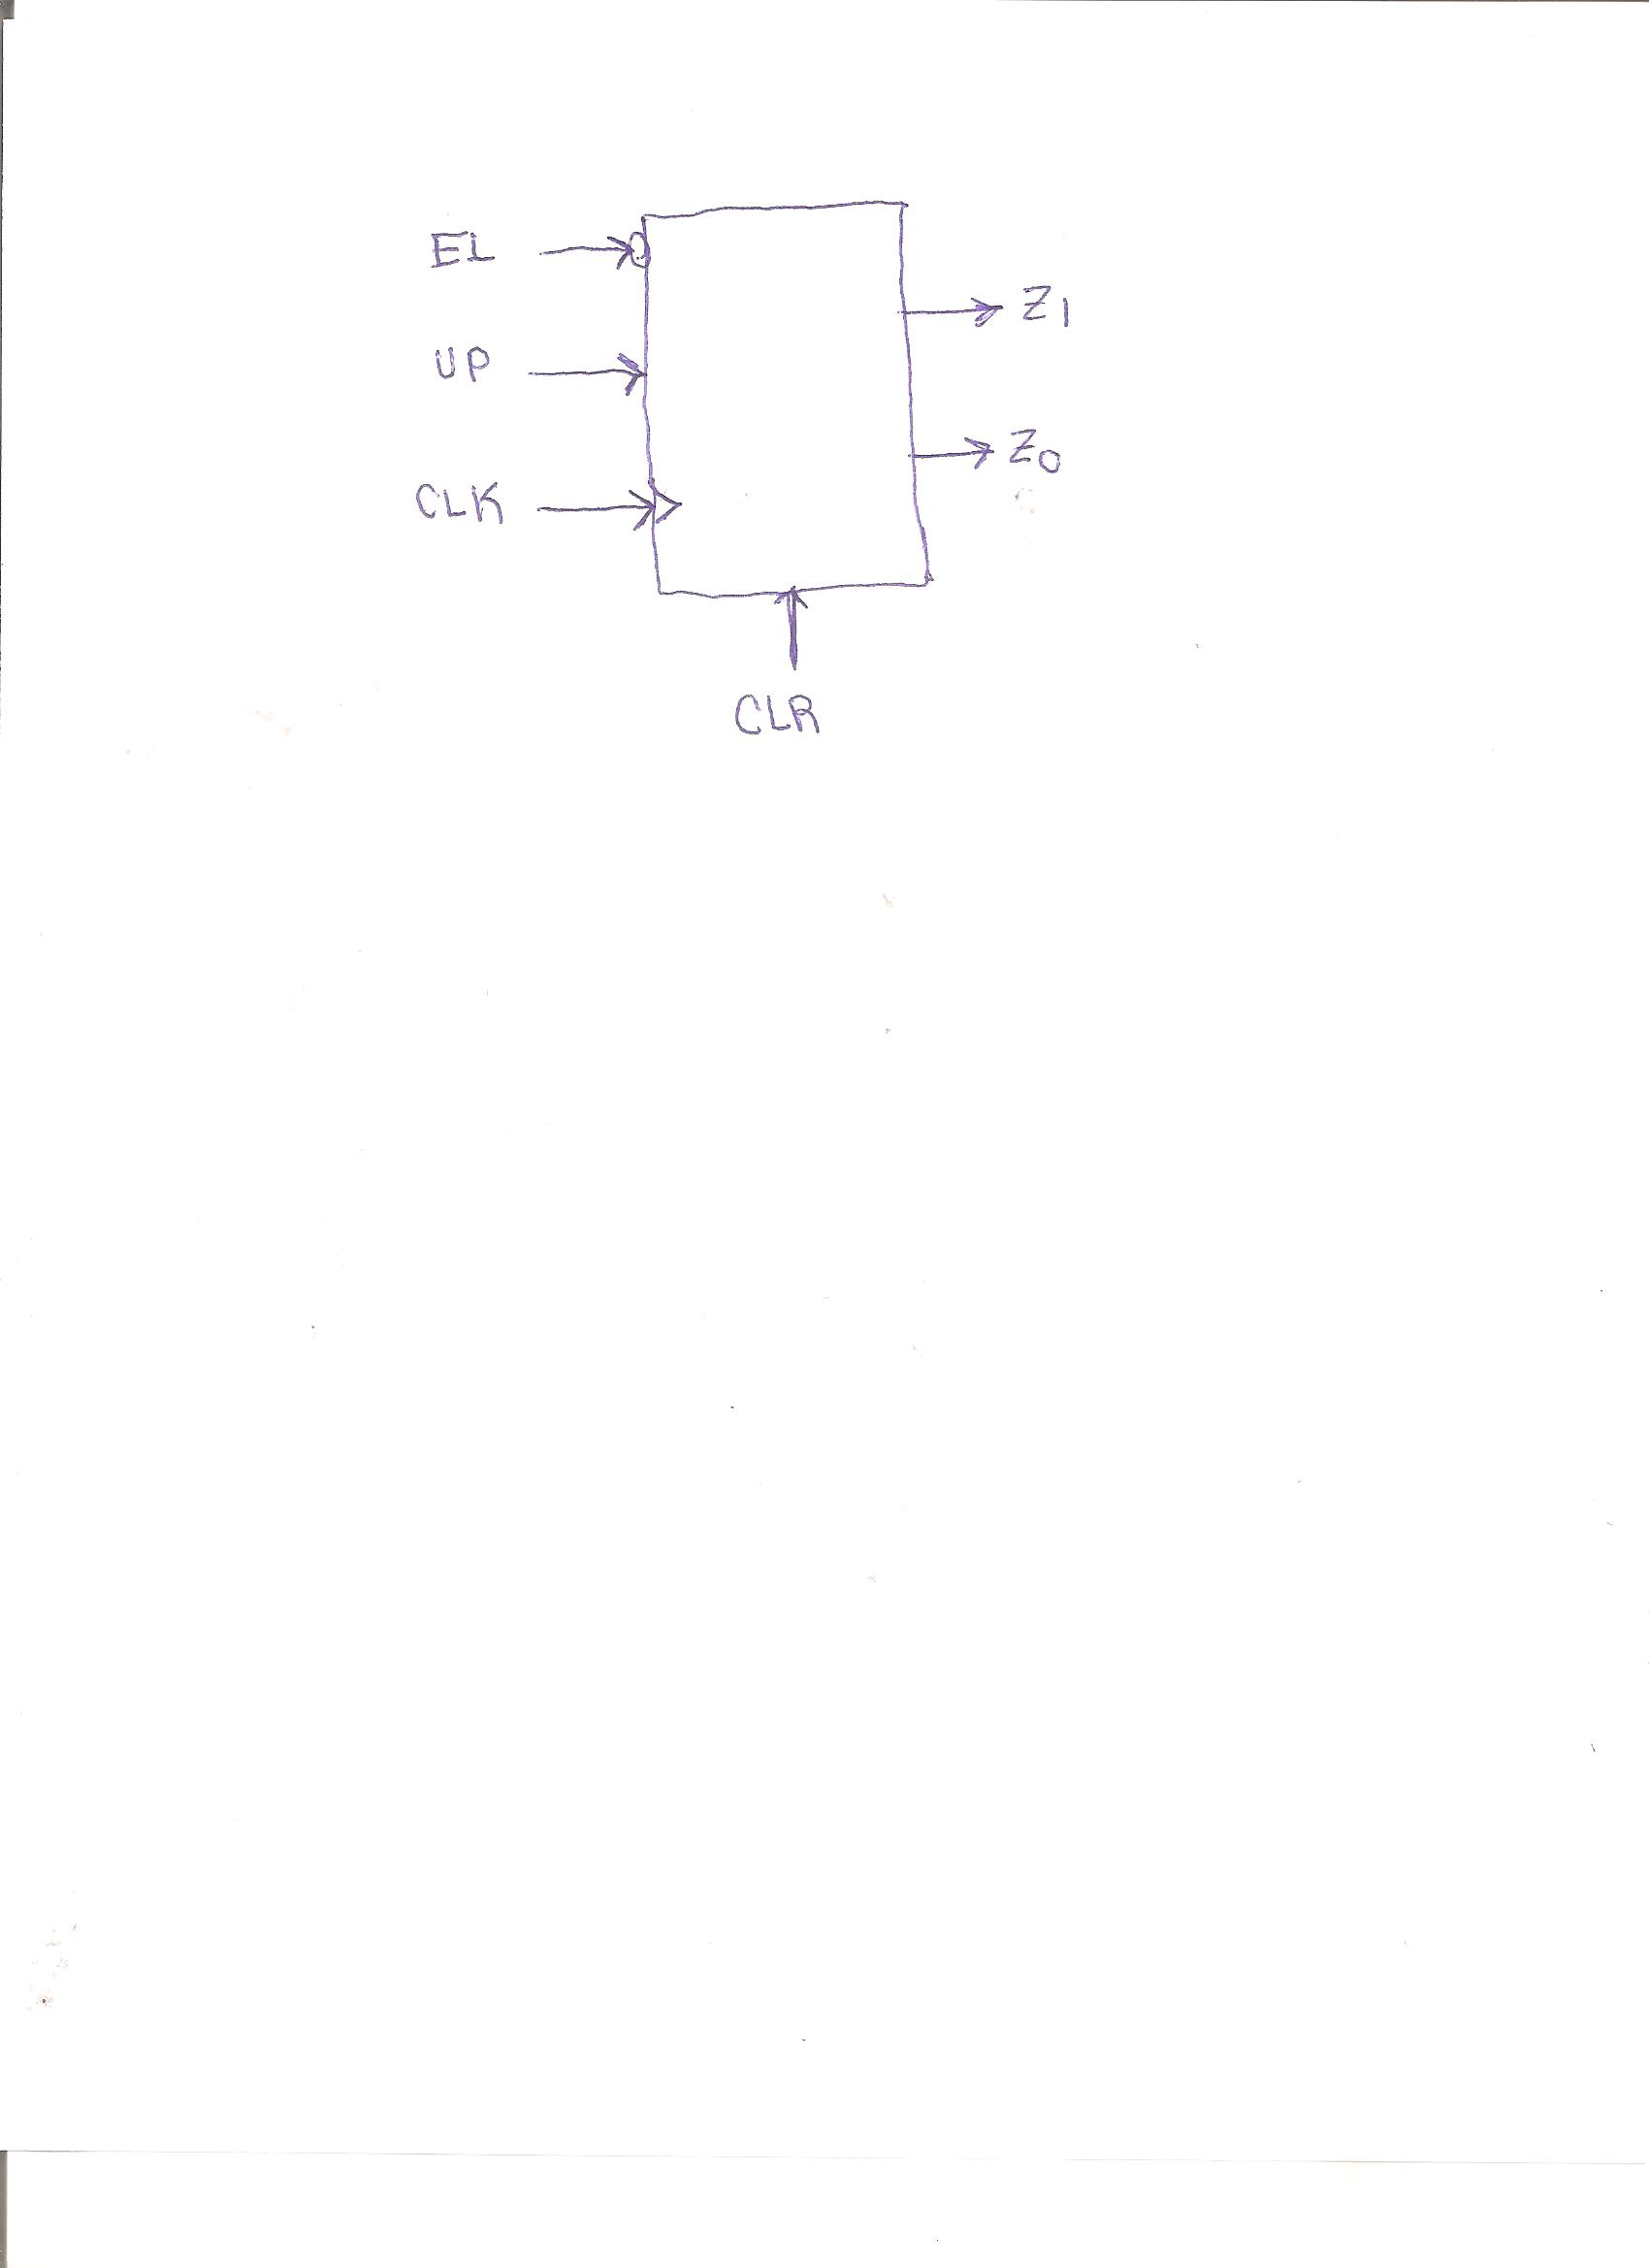 Design a 2-bit binary counter with the following c